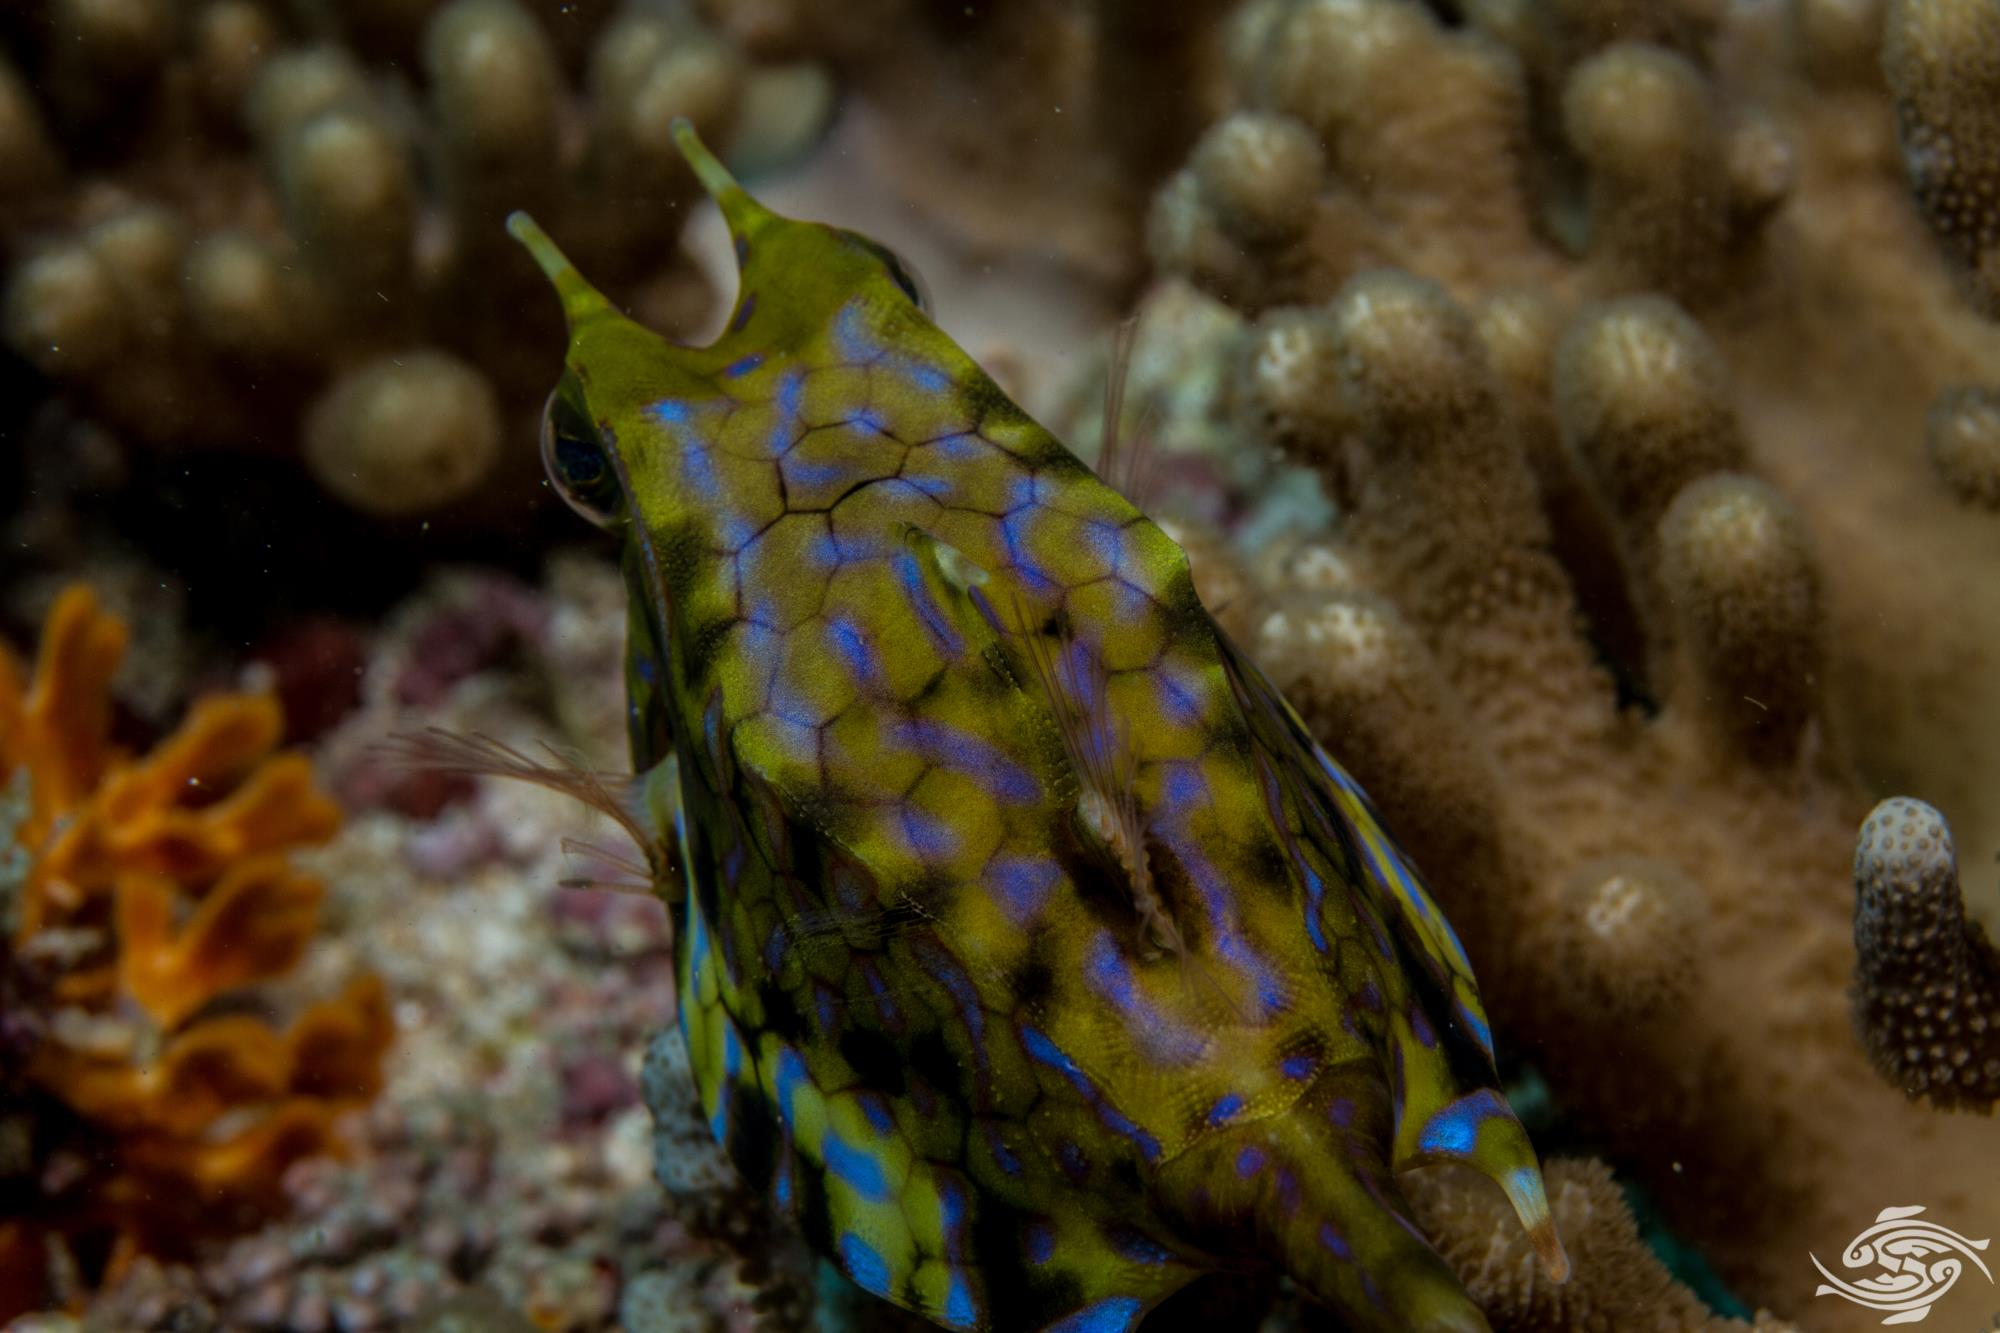 Thornback cowfish,Lactioria fornasini is also known as the Spiny-backed Cow-fish, Thornspine Cowfish and the Thorny-back Cowfish